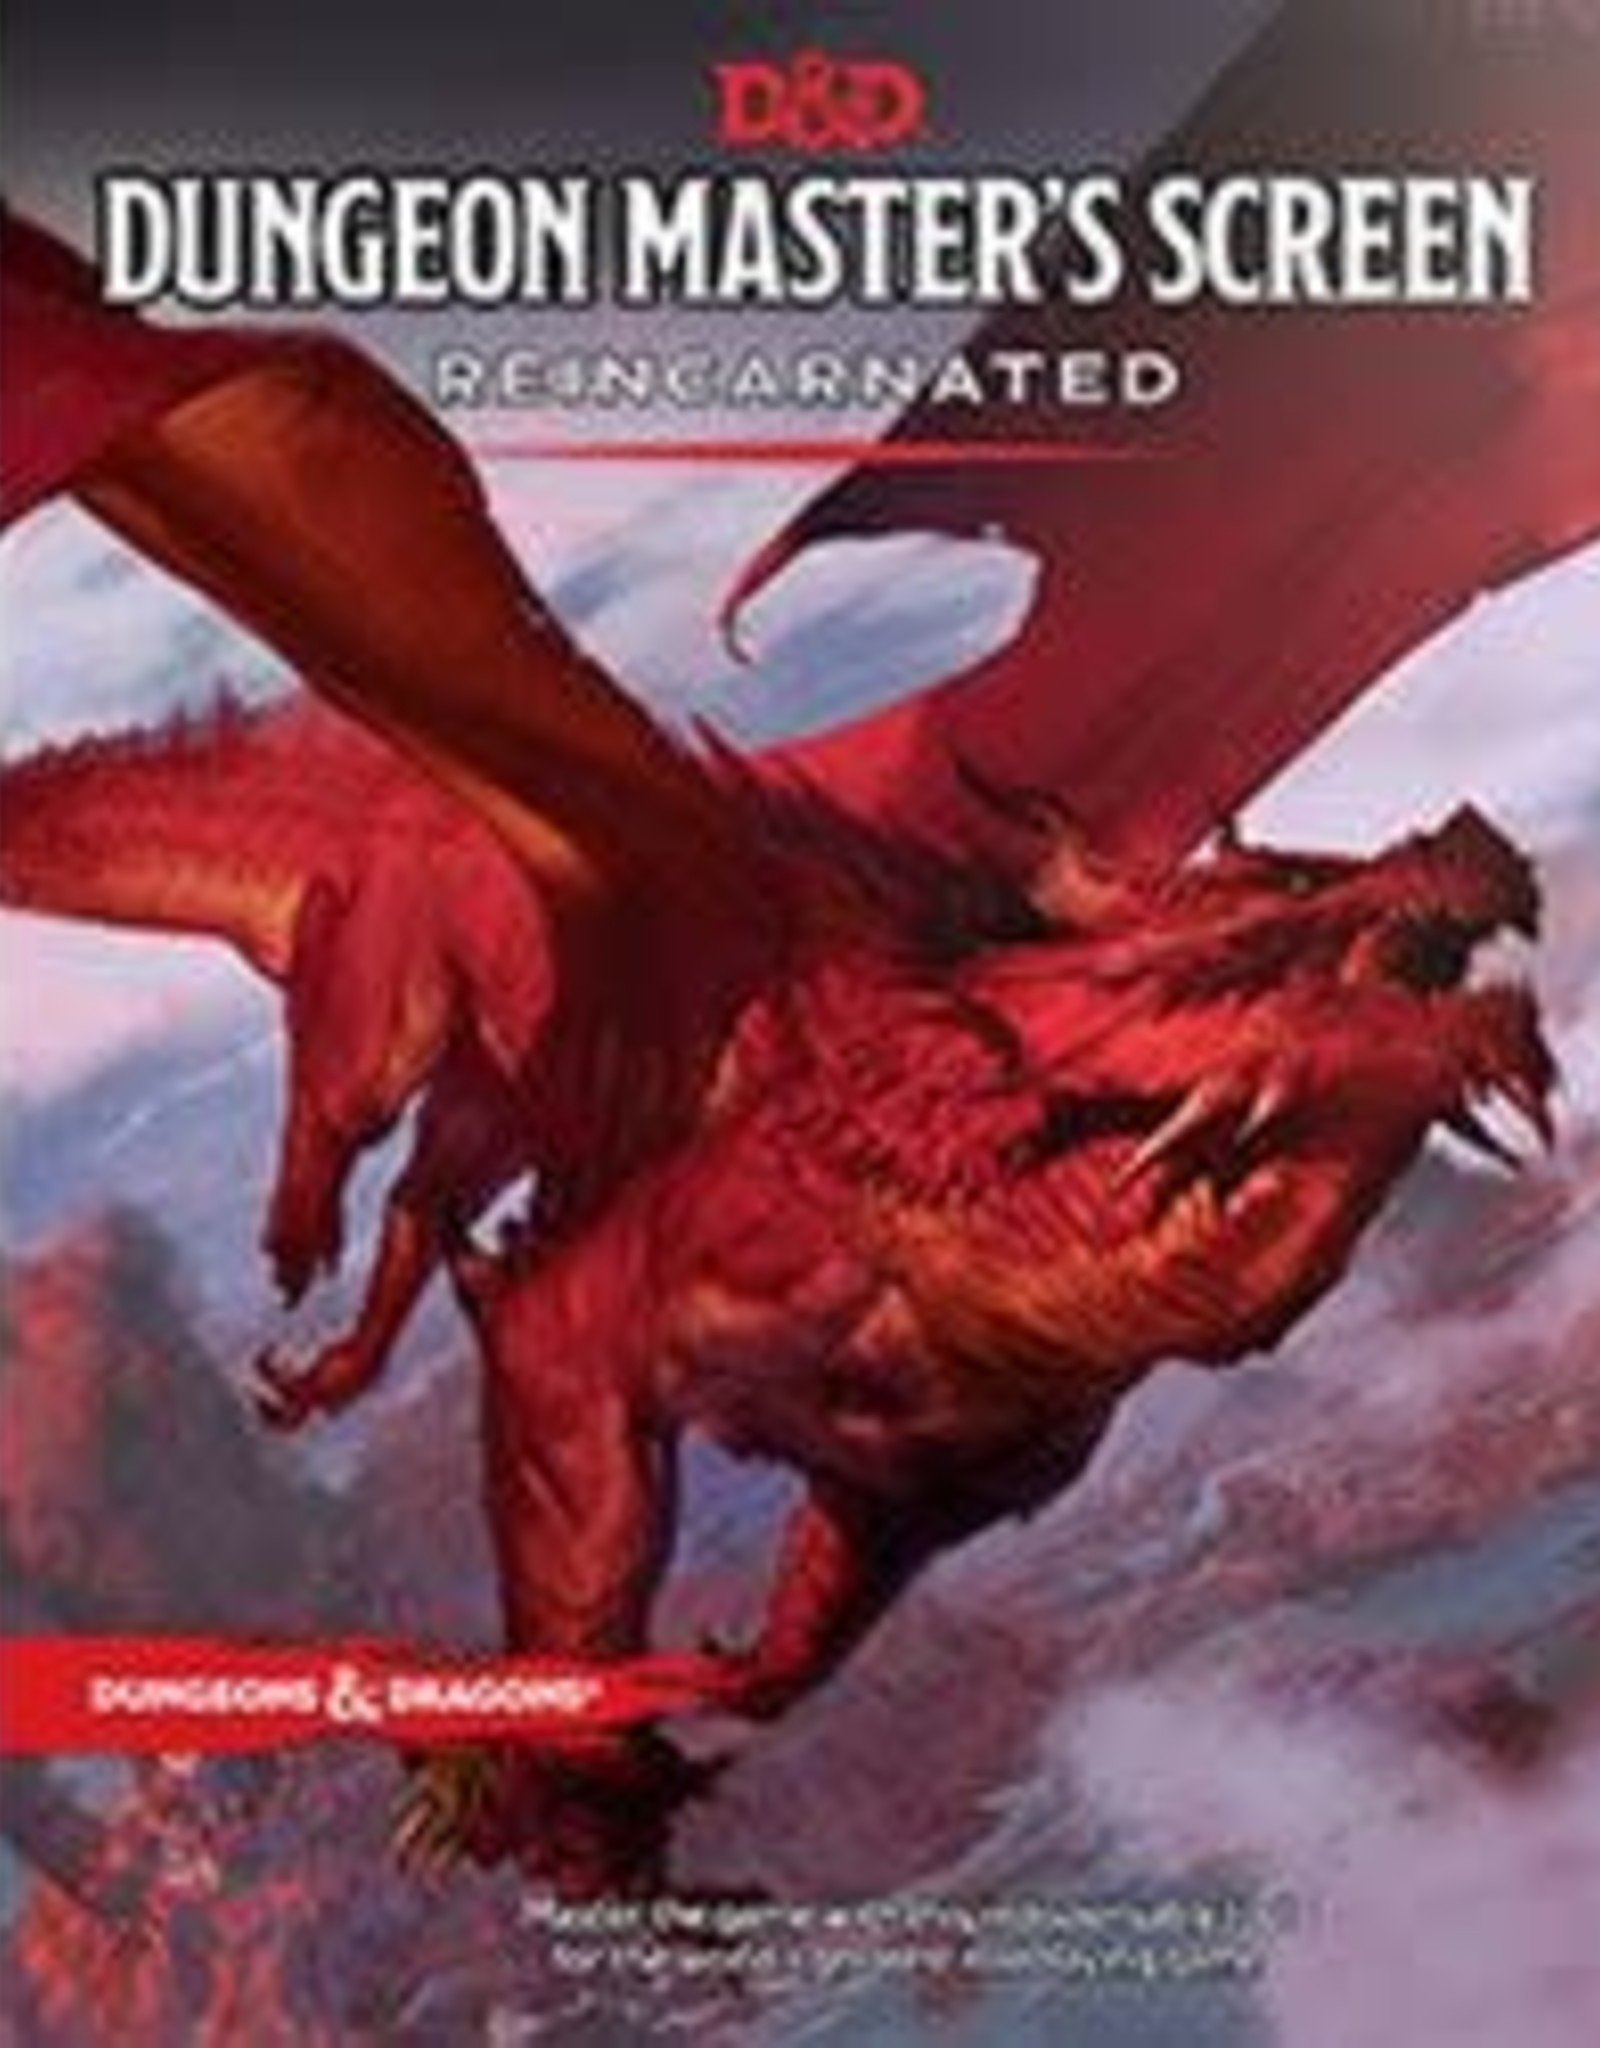 Wizards of the Coast Dungeons & Dragons - Dungeon Master's Screen Reincarnated